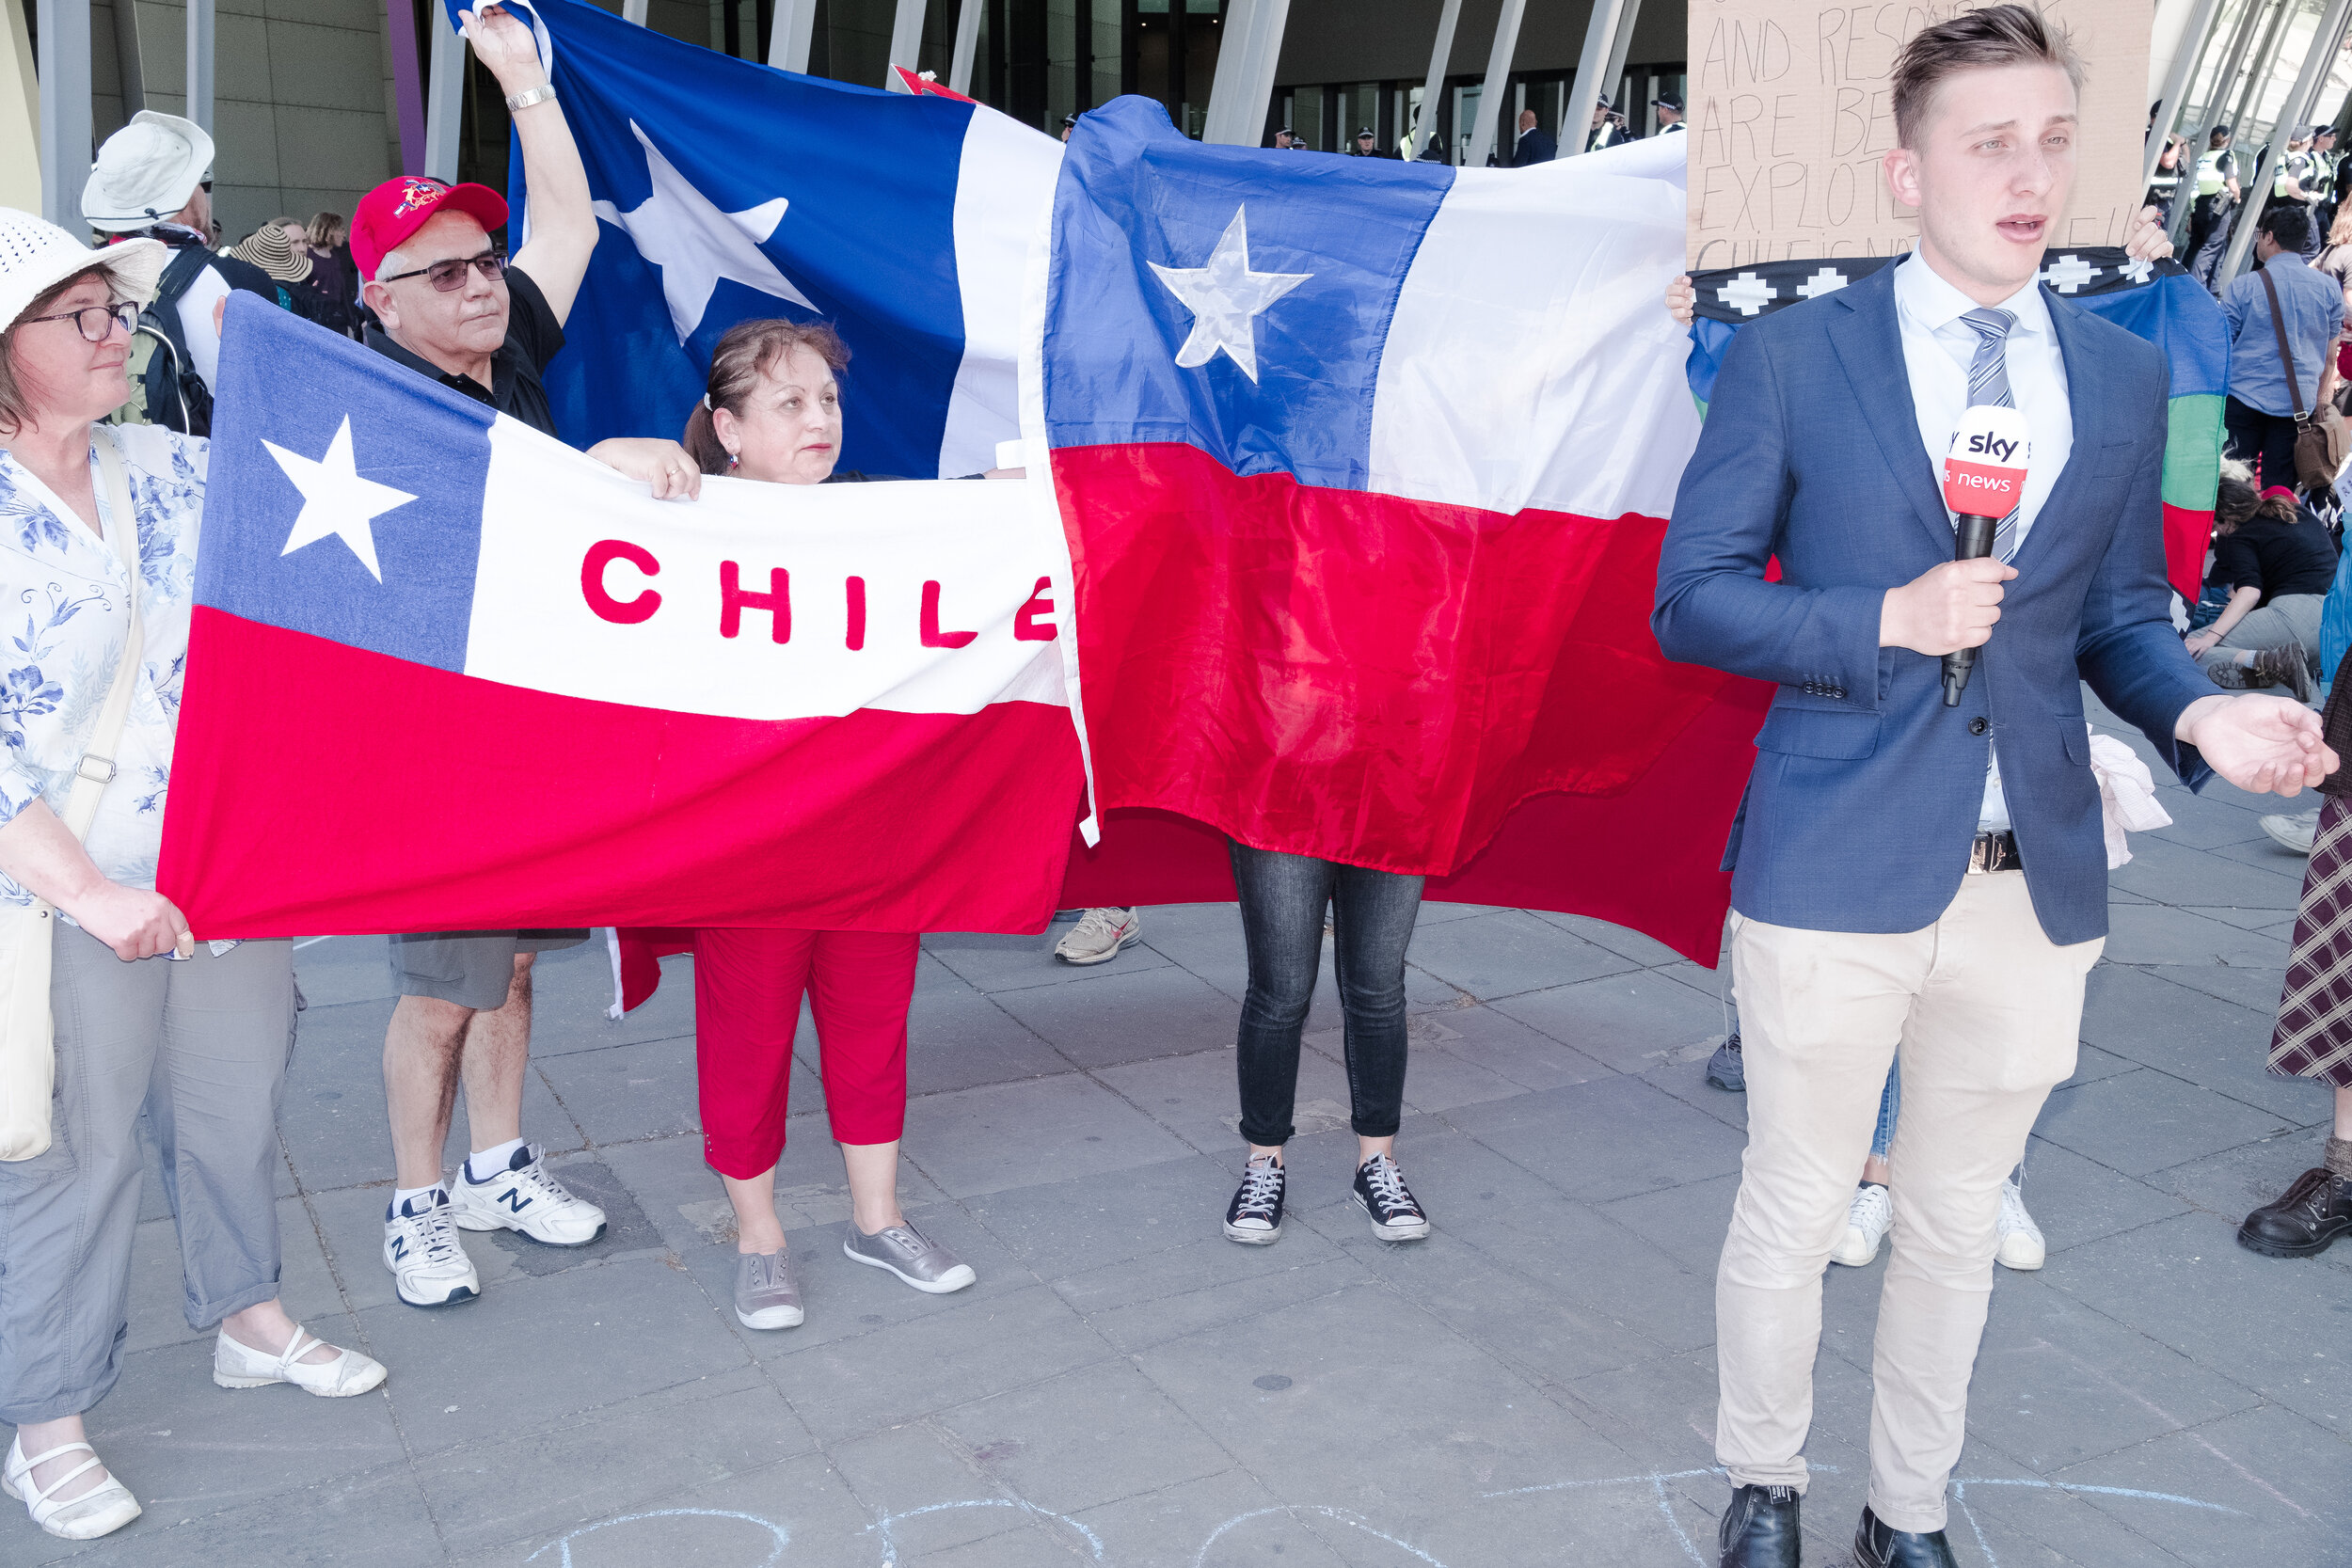 Protesters wave the Chilean flag behind a Sky News Reporter. The rally supported the recent mass protests in Chile that fought against corporations privatising lands. (Photo: Jeremy Gan)